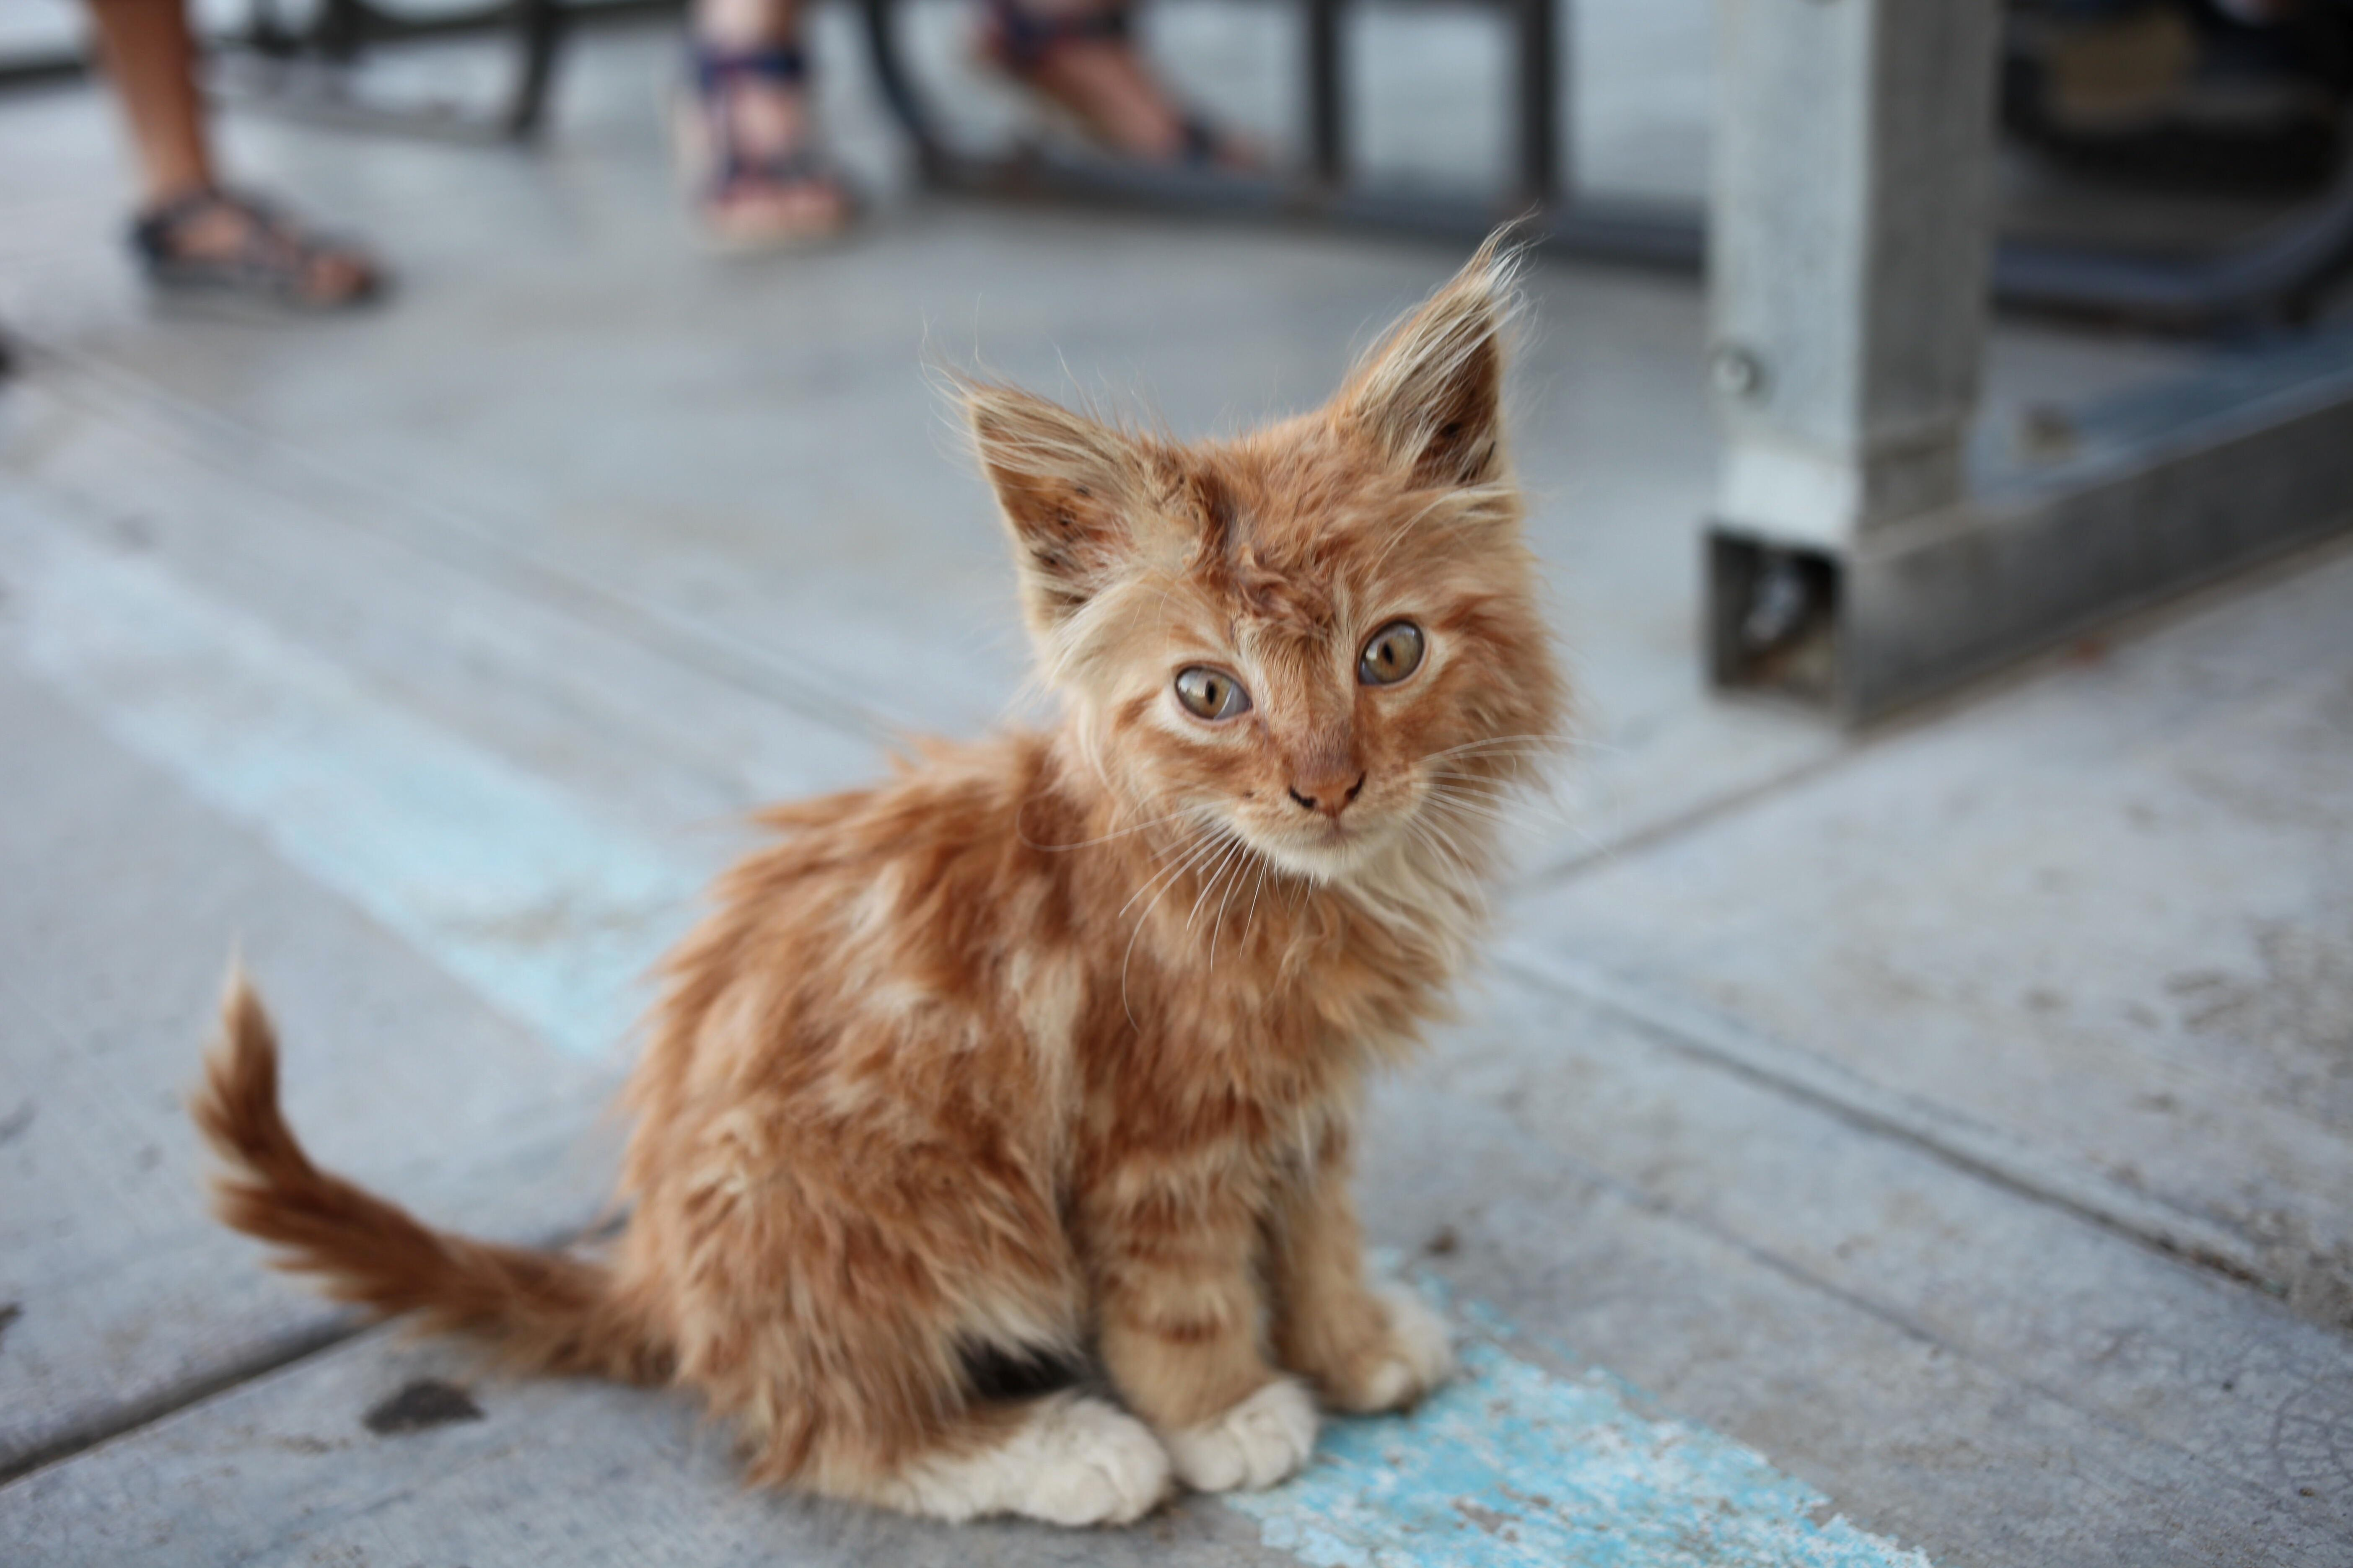 Adorable stray outside of a restaurant